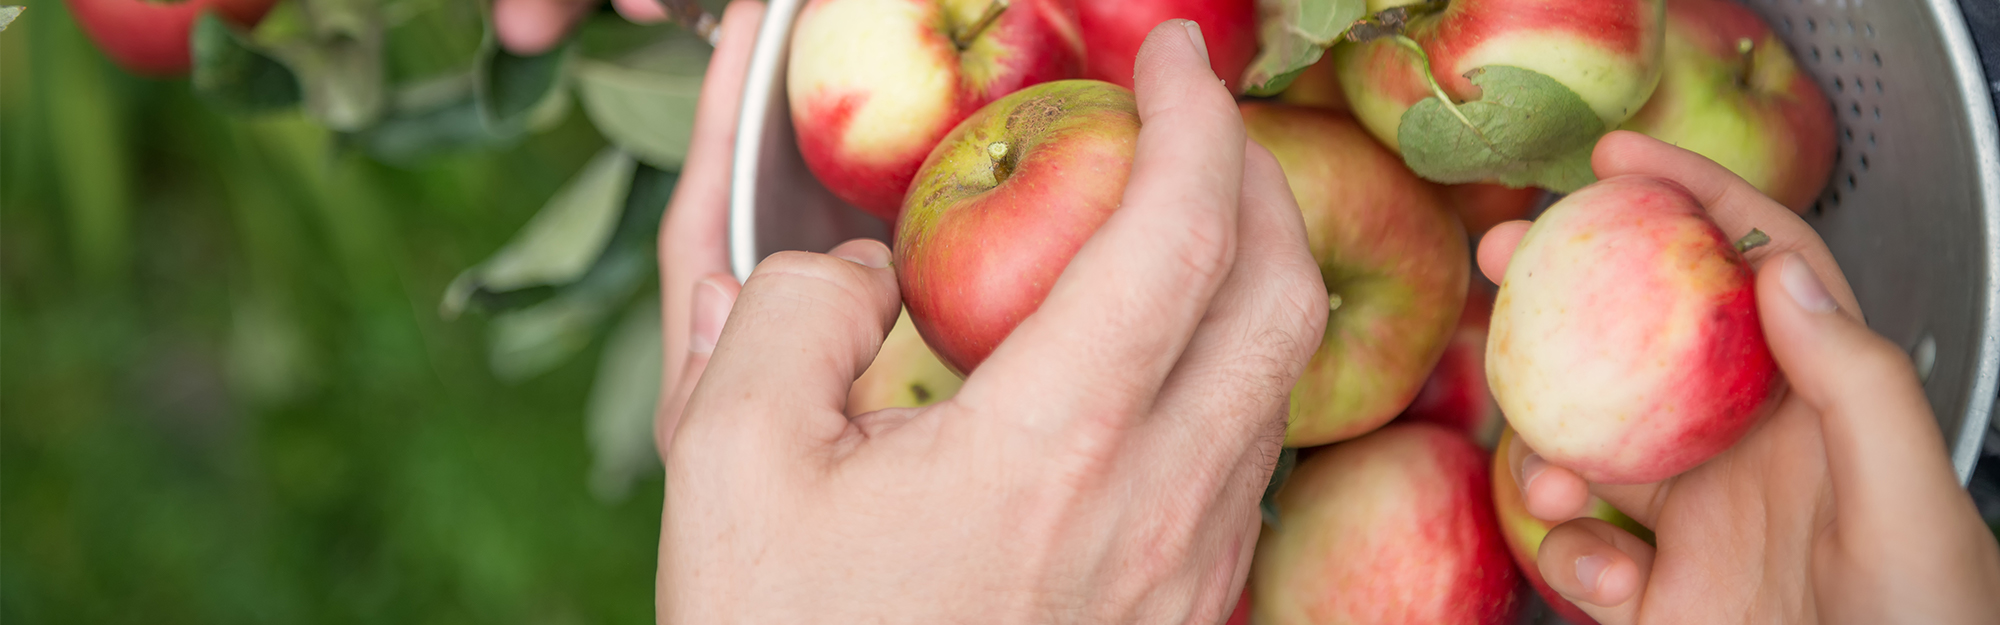 Hands picking red apples and putting them in a bucket.